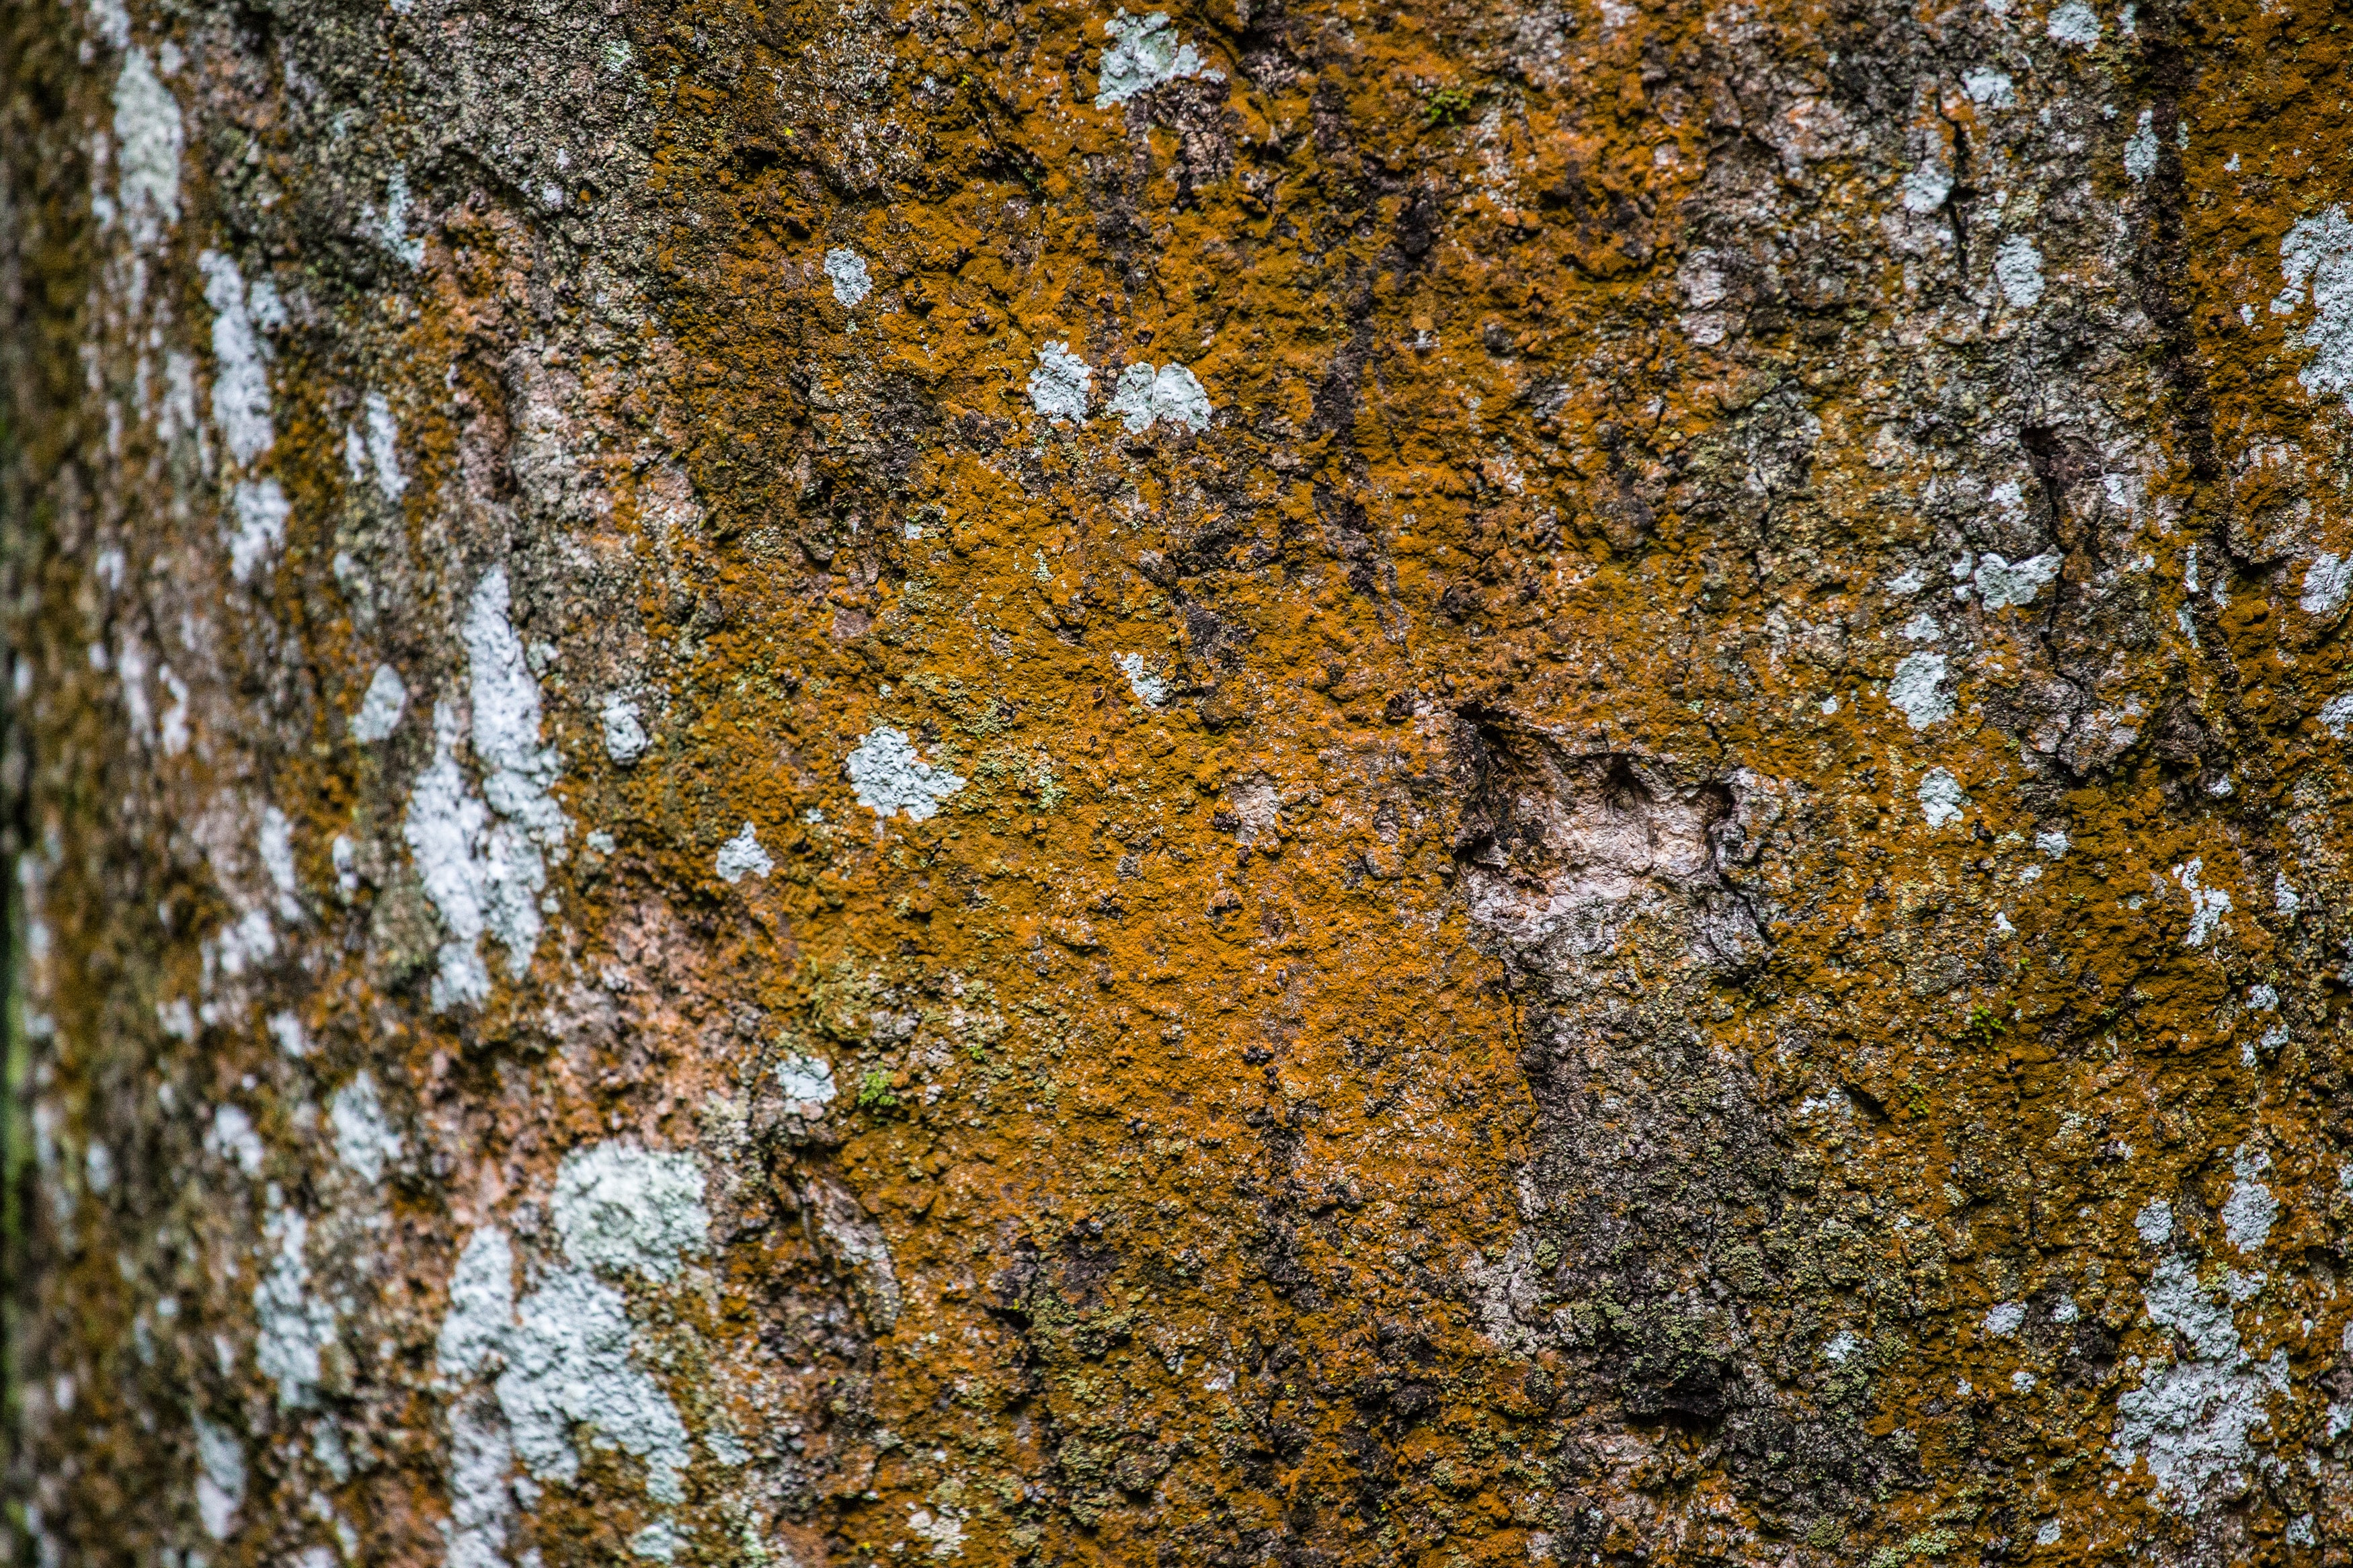 Close-up of dark yellow moss on tree bark